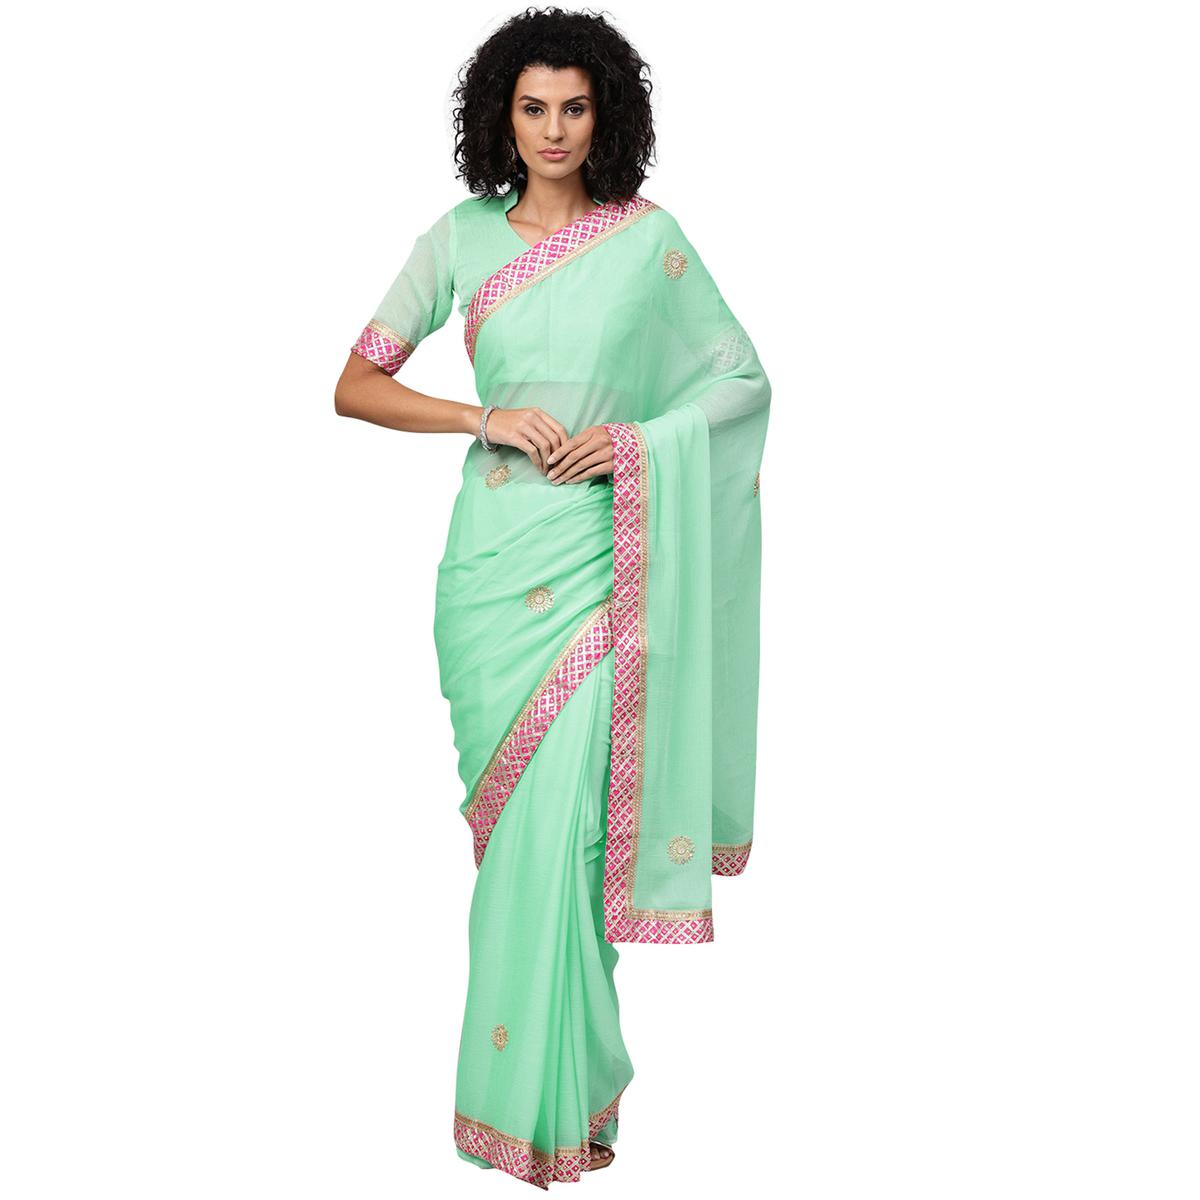 Sensational Aqua Green Colored Party Wear Georgette Saree